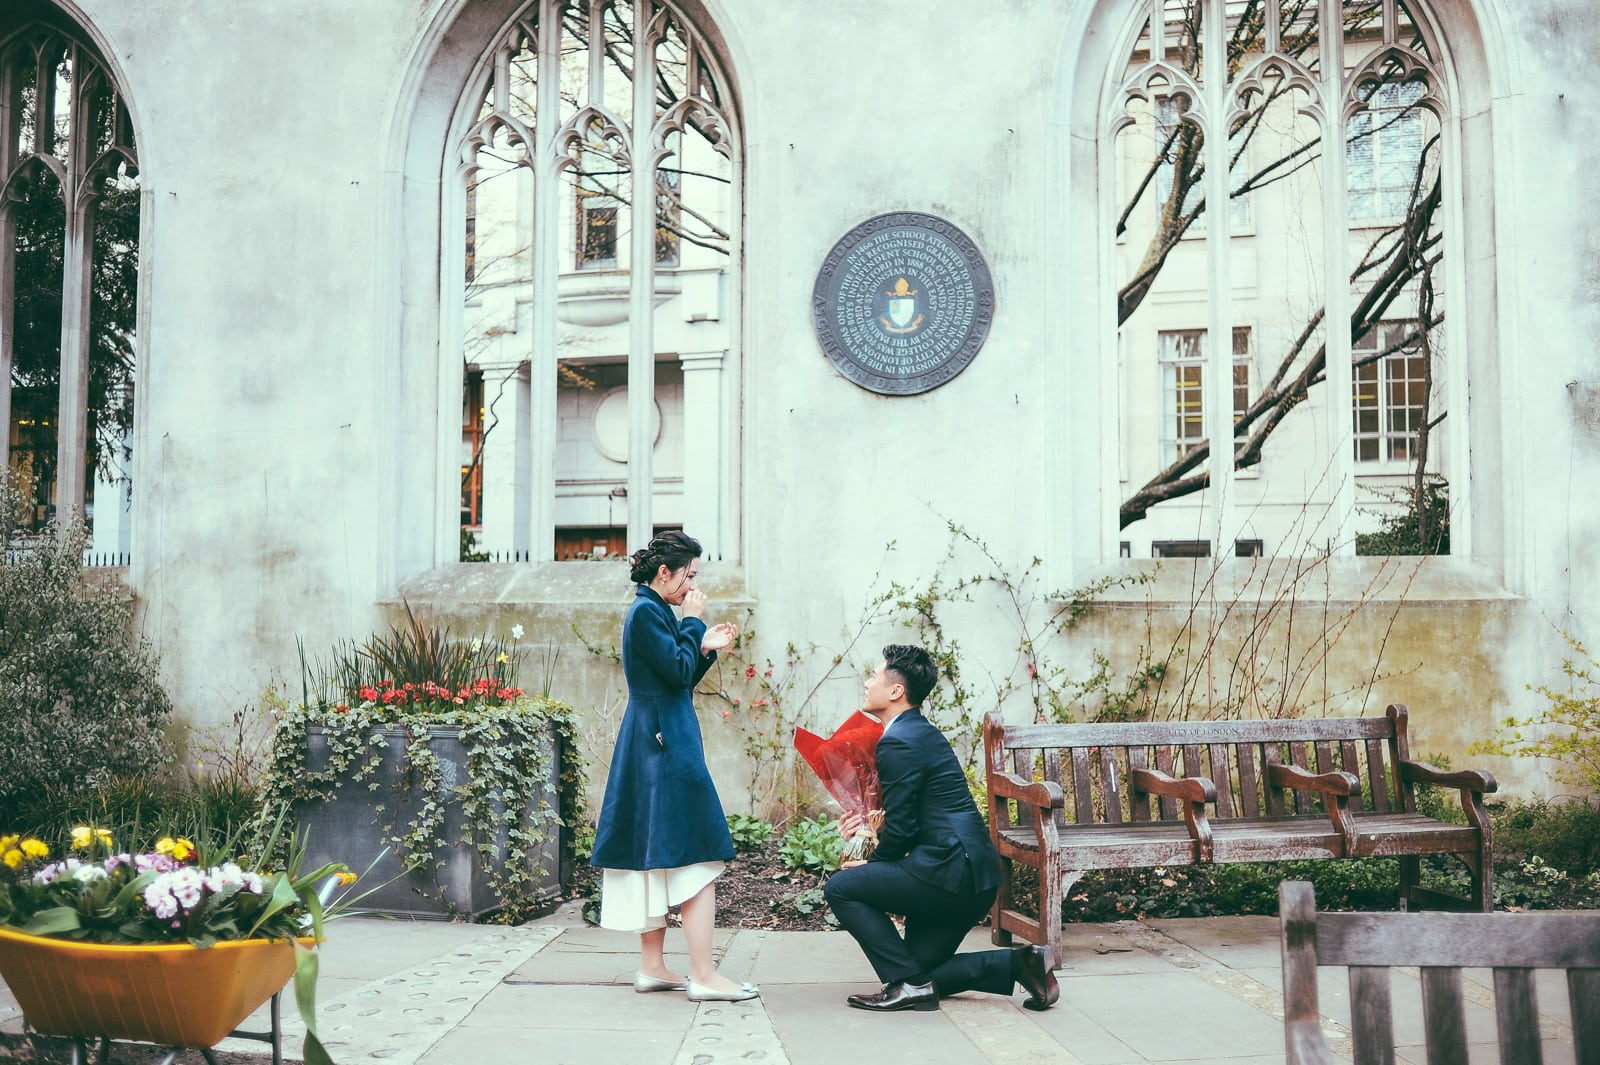 Photo of a man proposing to his girlfriend at a church for their london proposal